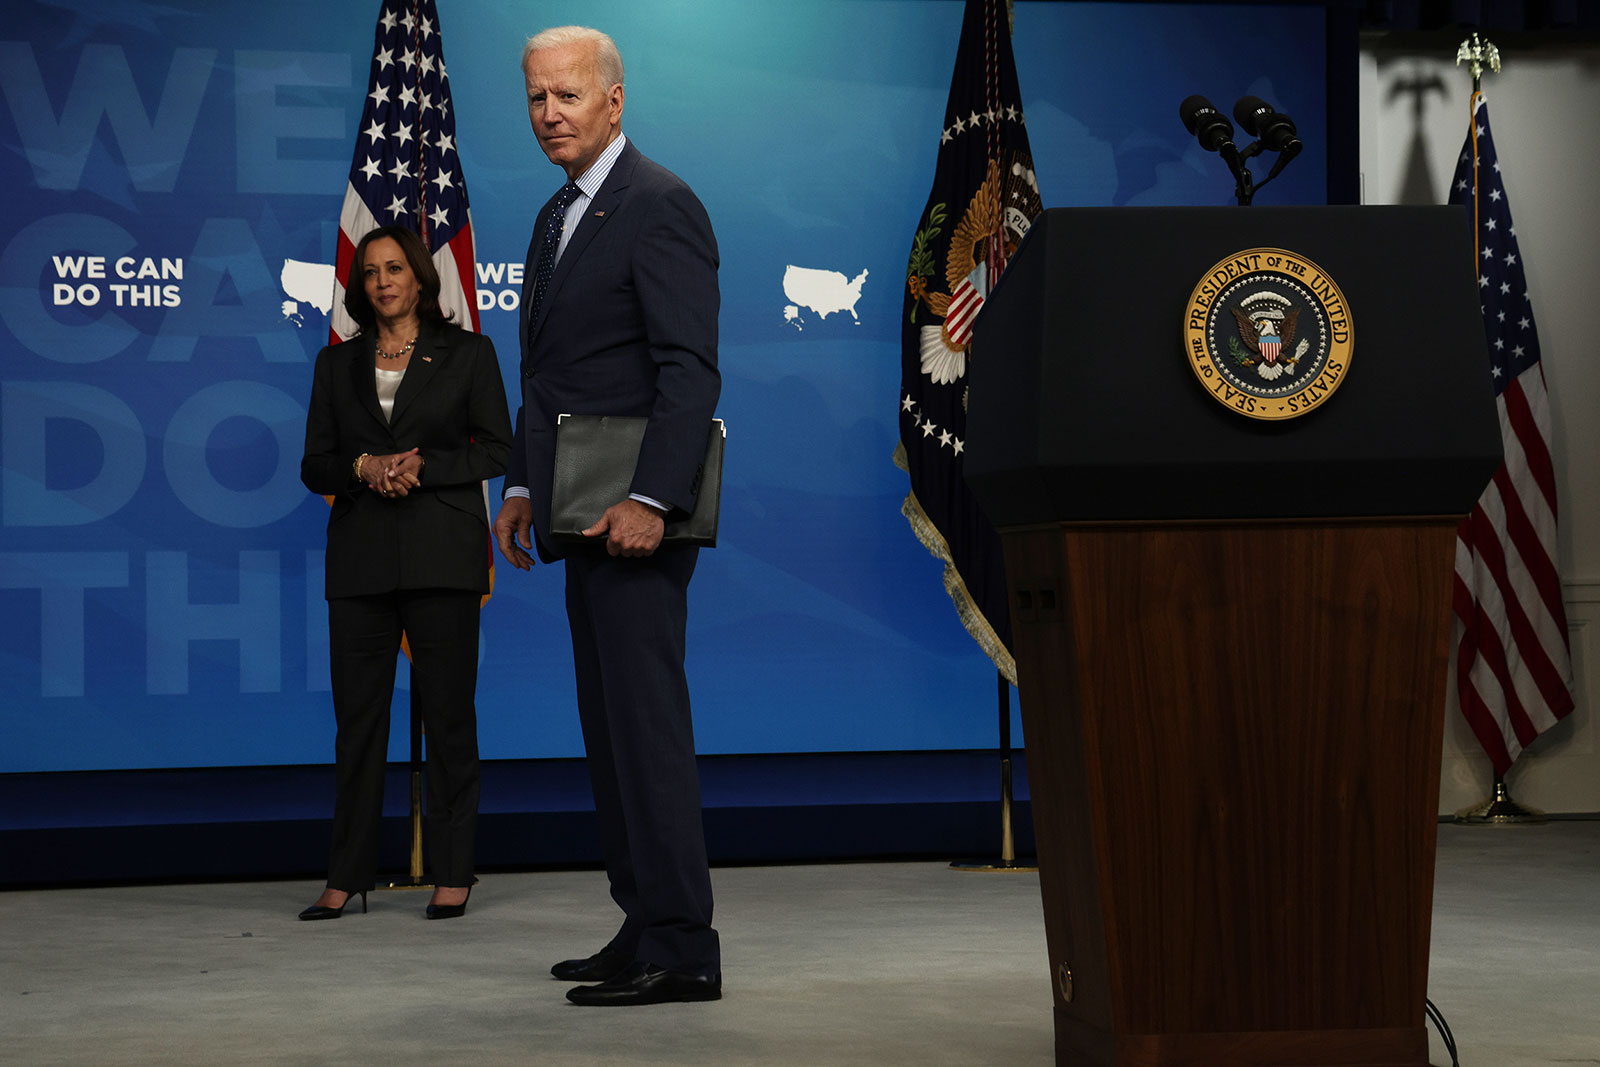 President Joe Biden, with Vice President Kamala Harris, listens to questions from members of the press after speaking at the South Court Auditorium in Washington on Wednesday, June 2.